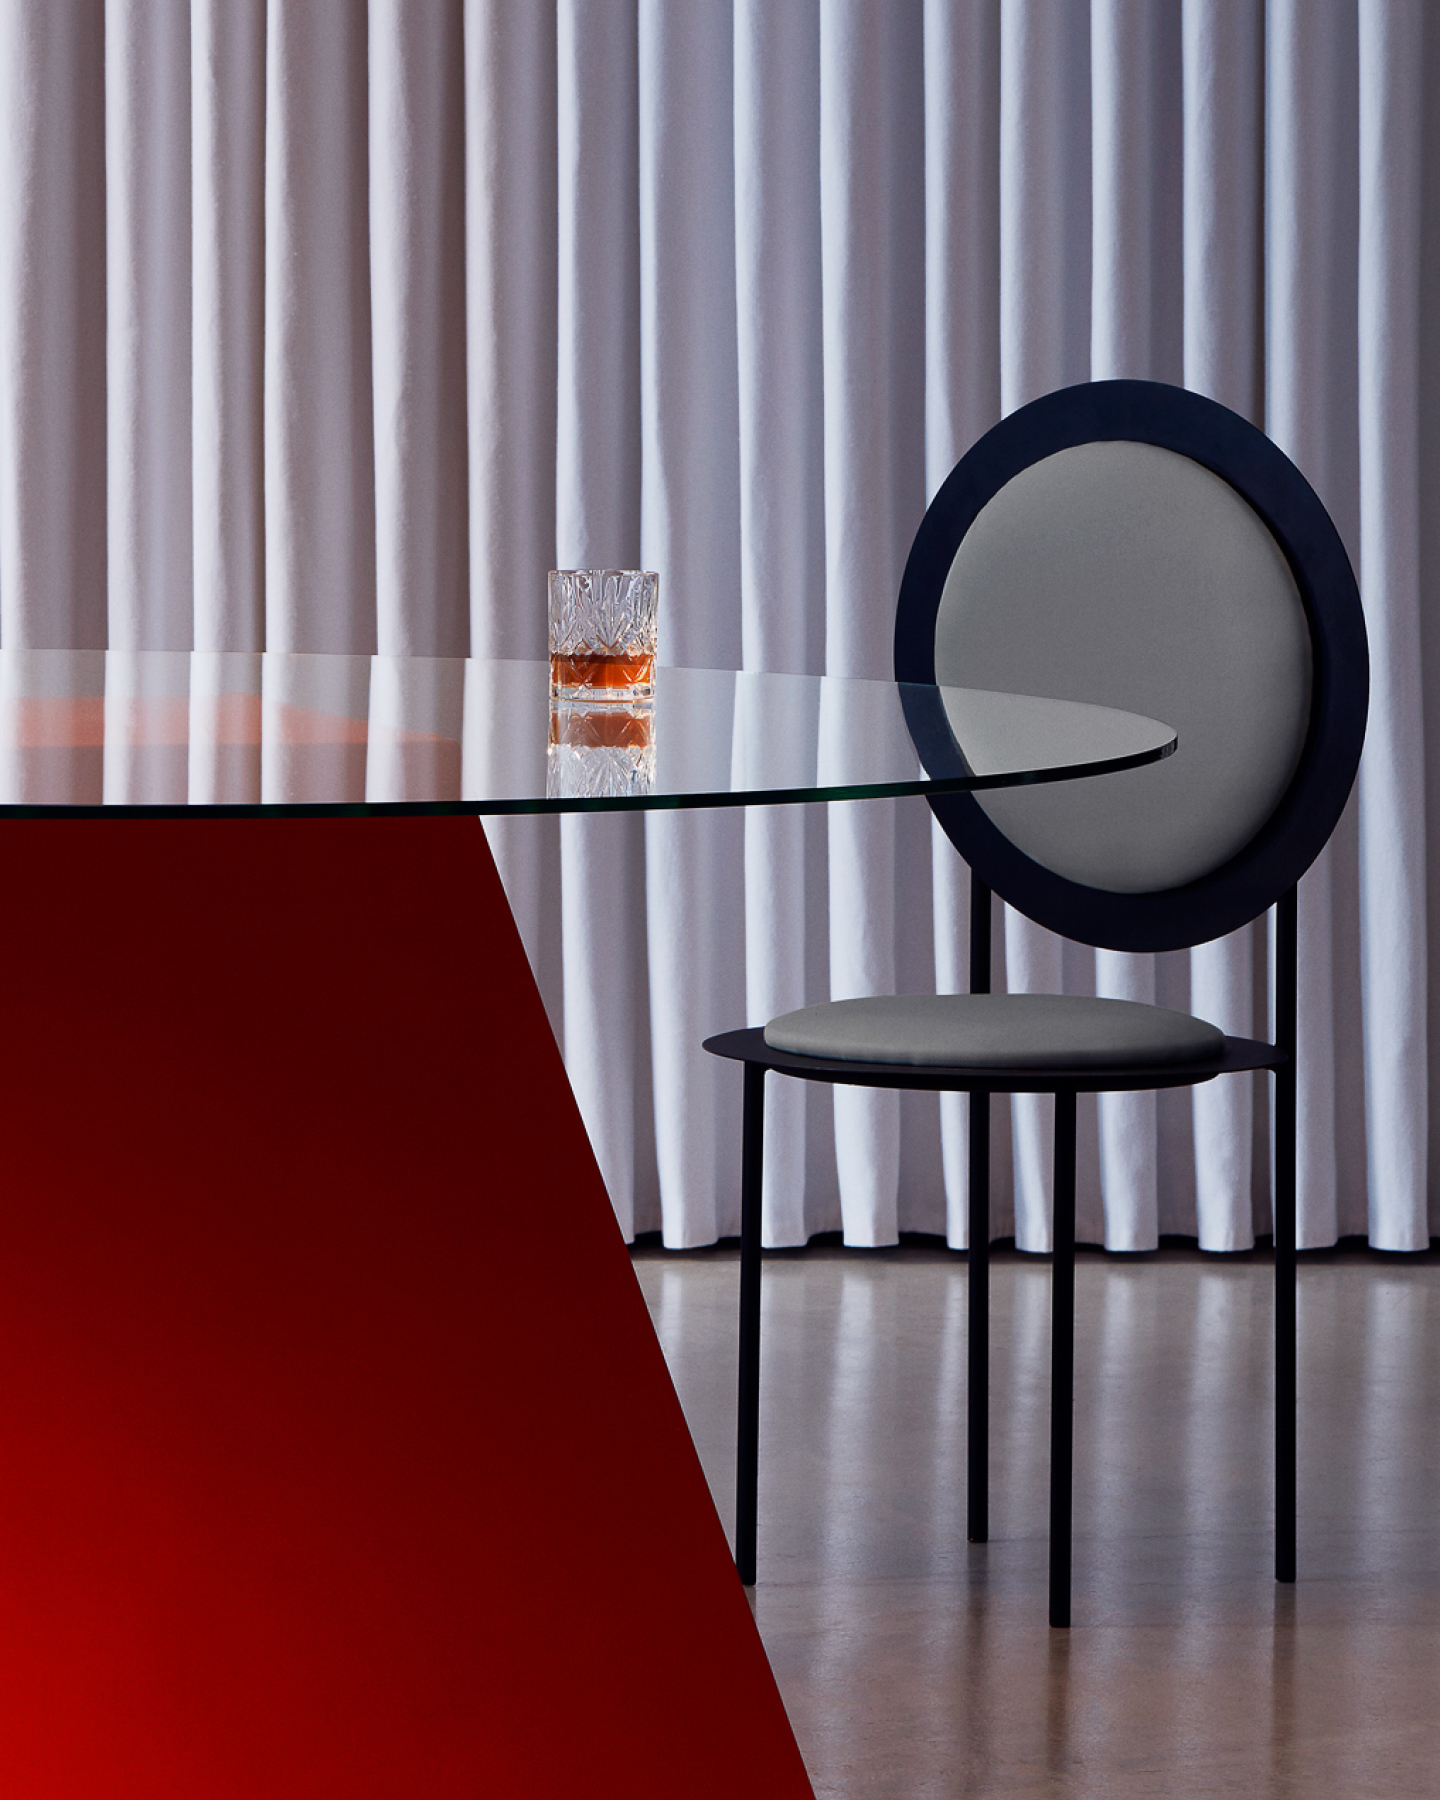 Lighting compositions |FOLCH